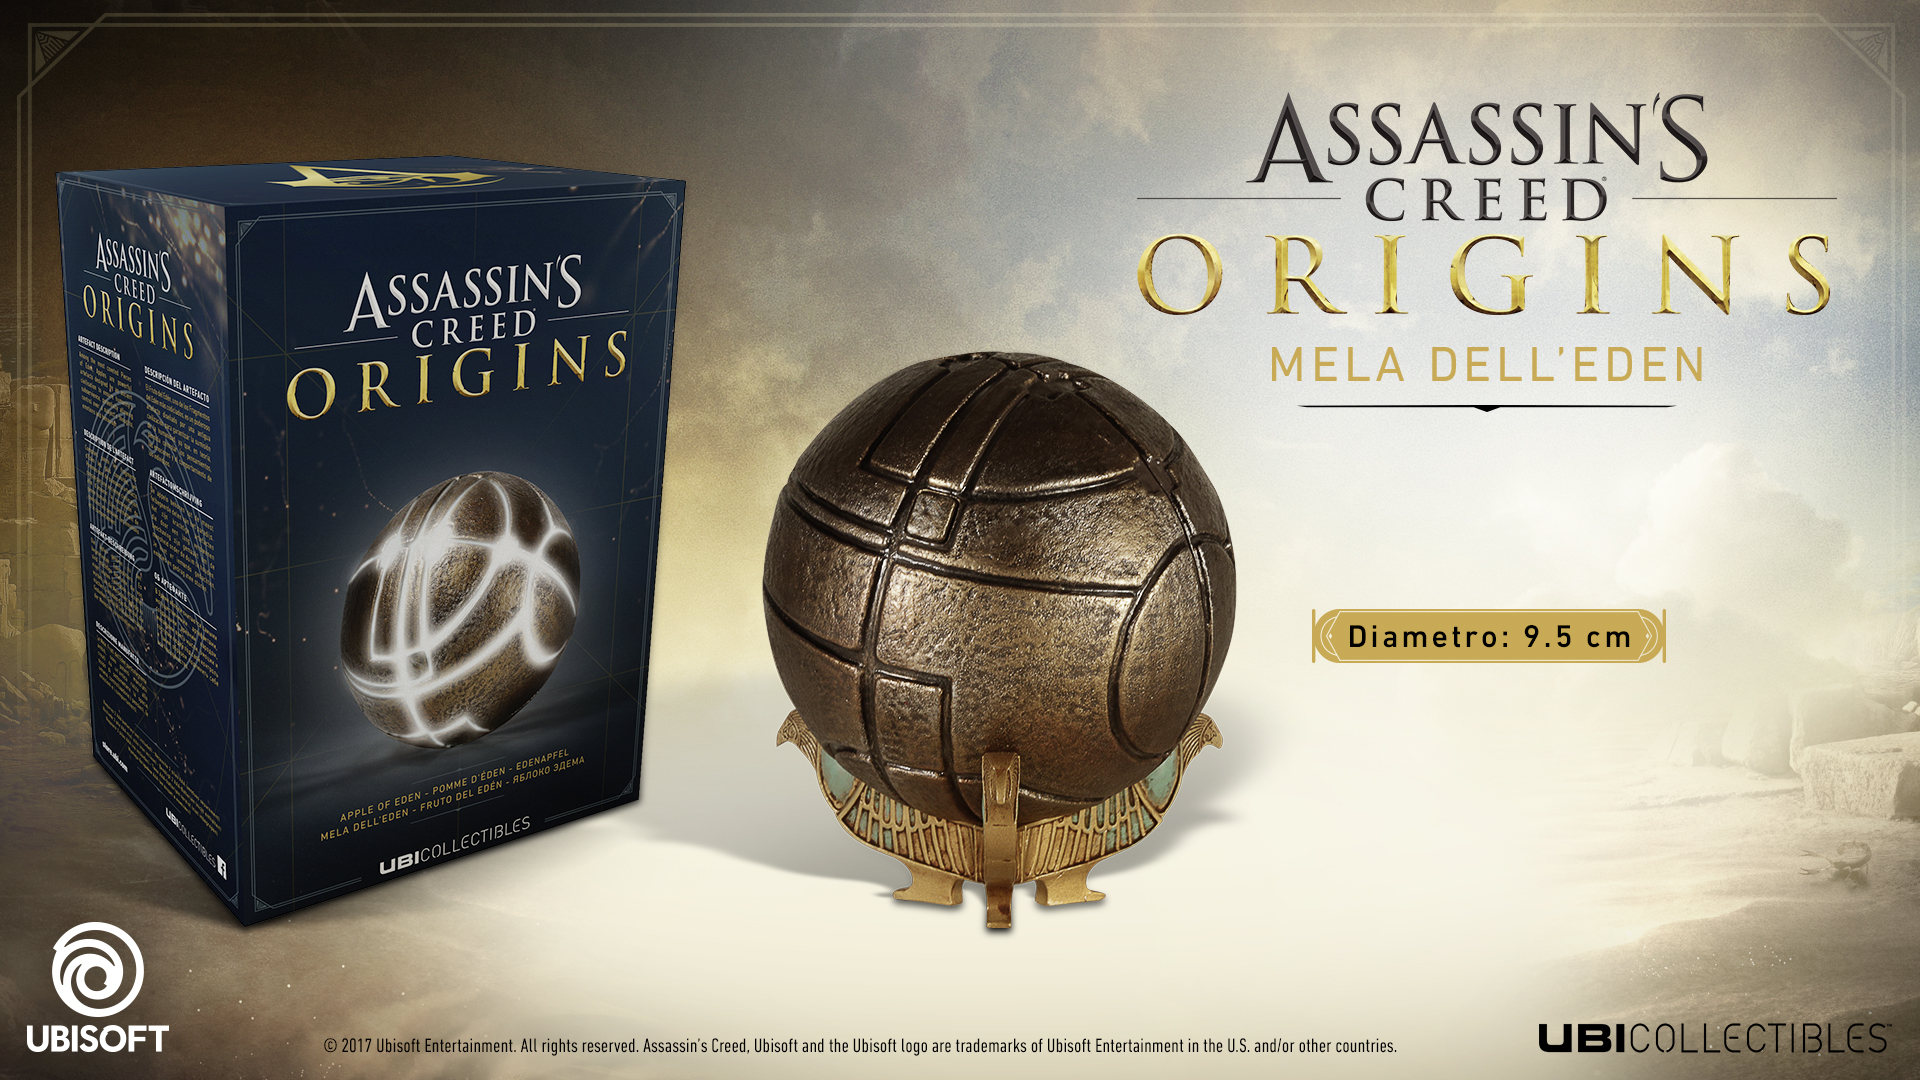 ASSASSIN'S CREED® ORIGINS: MELA DELL'EDEN